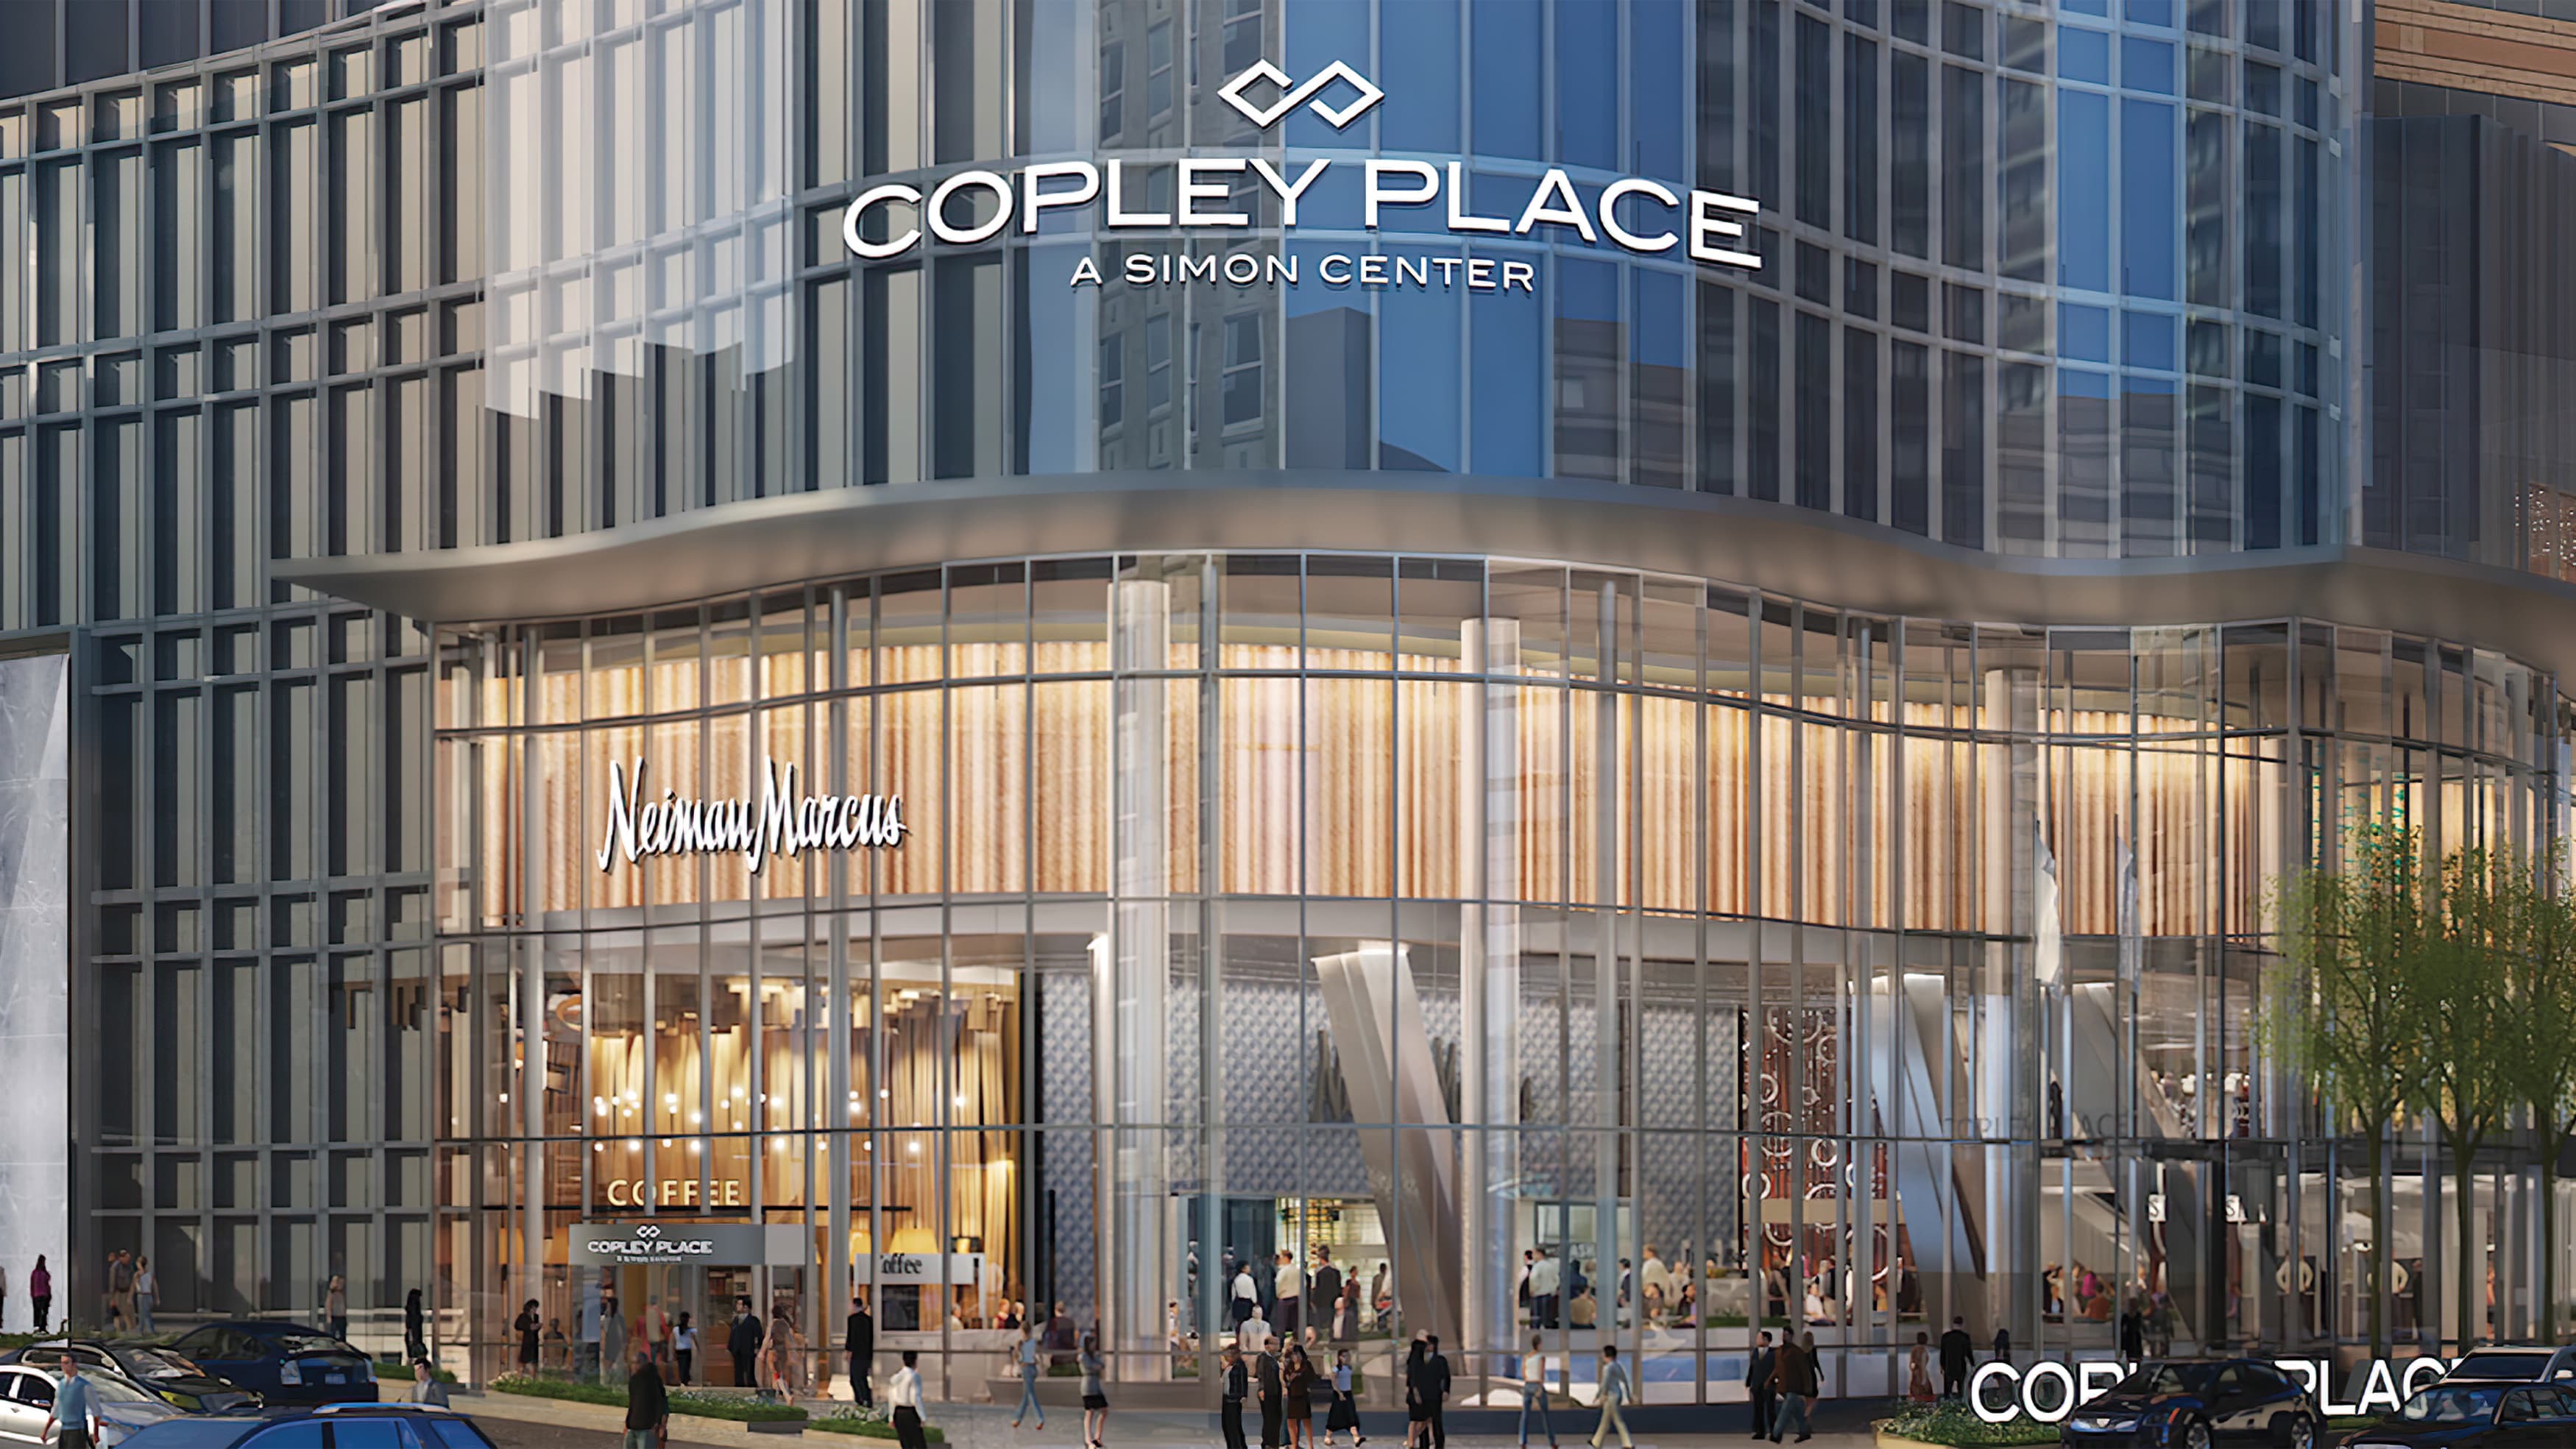 Copley Place identity signage integrated with architecture